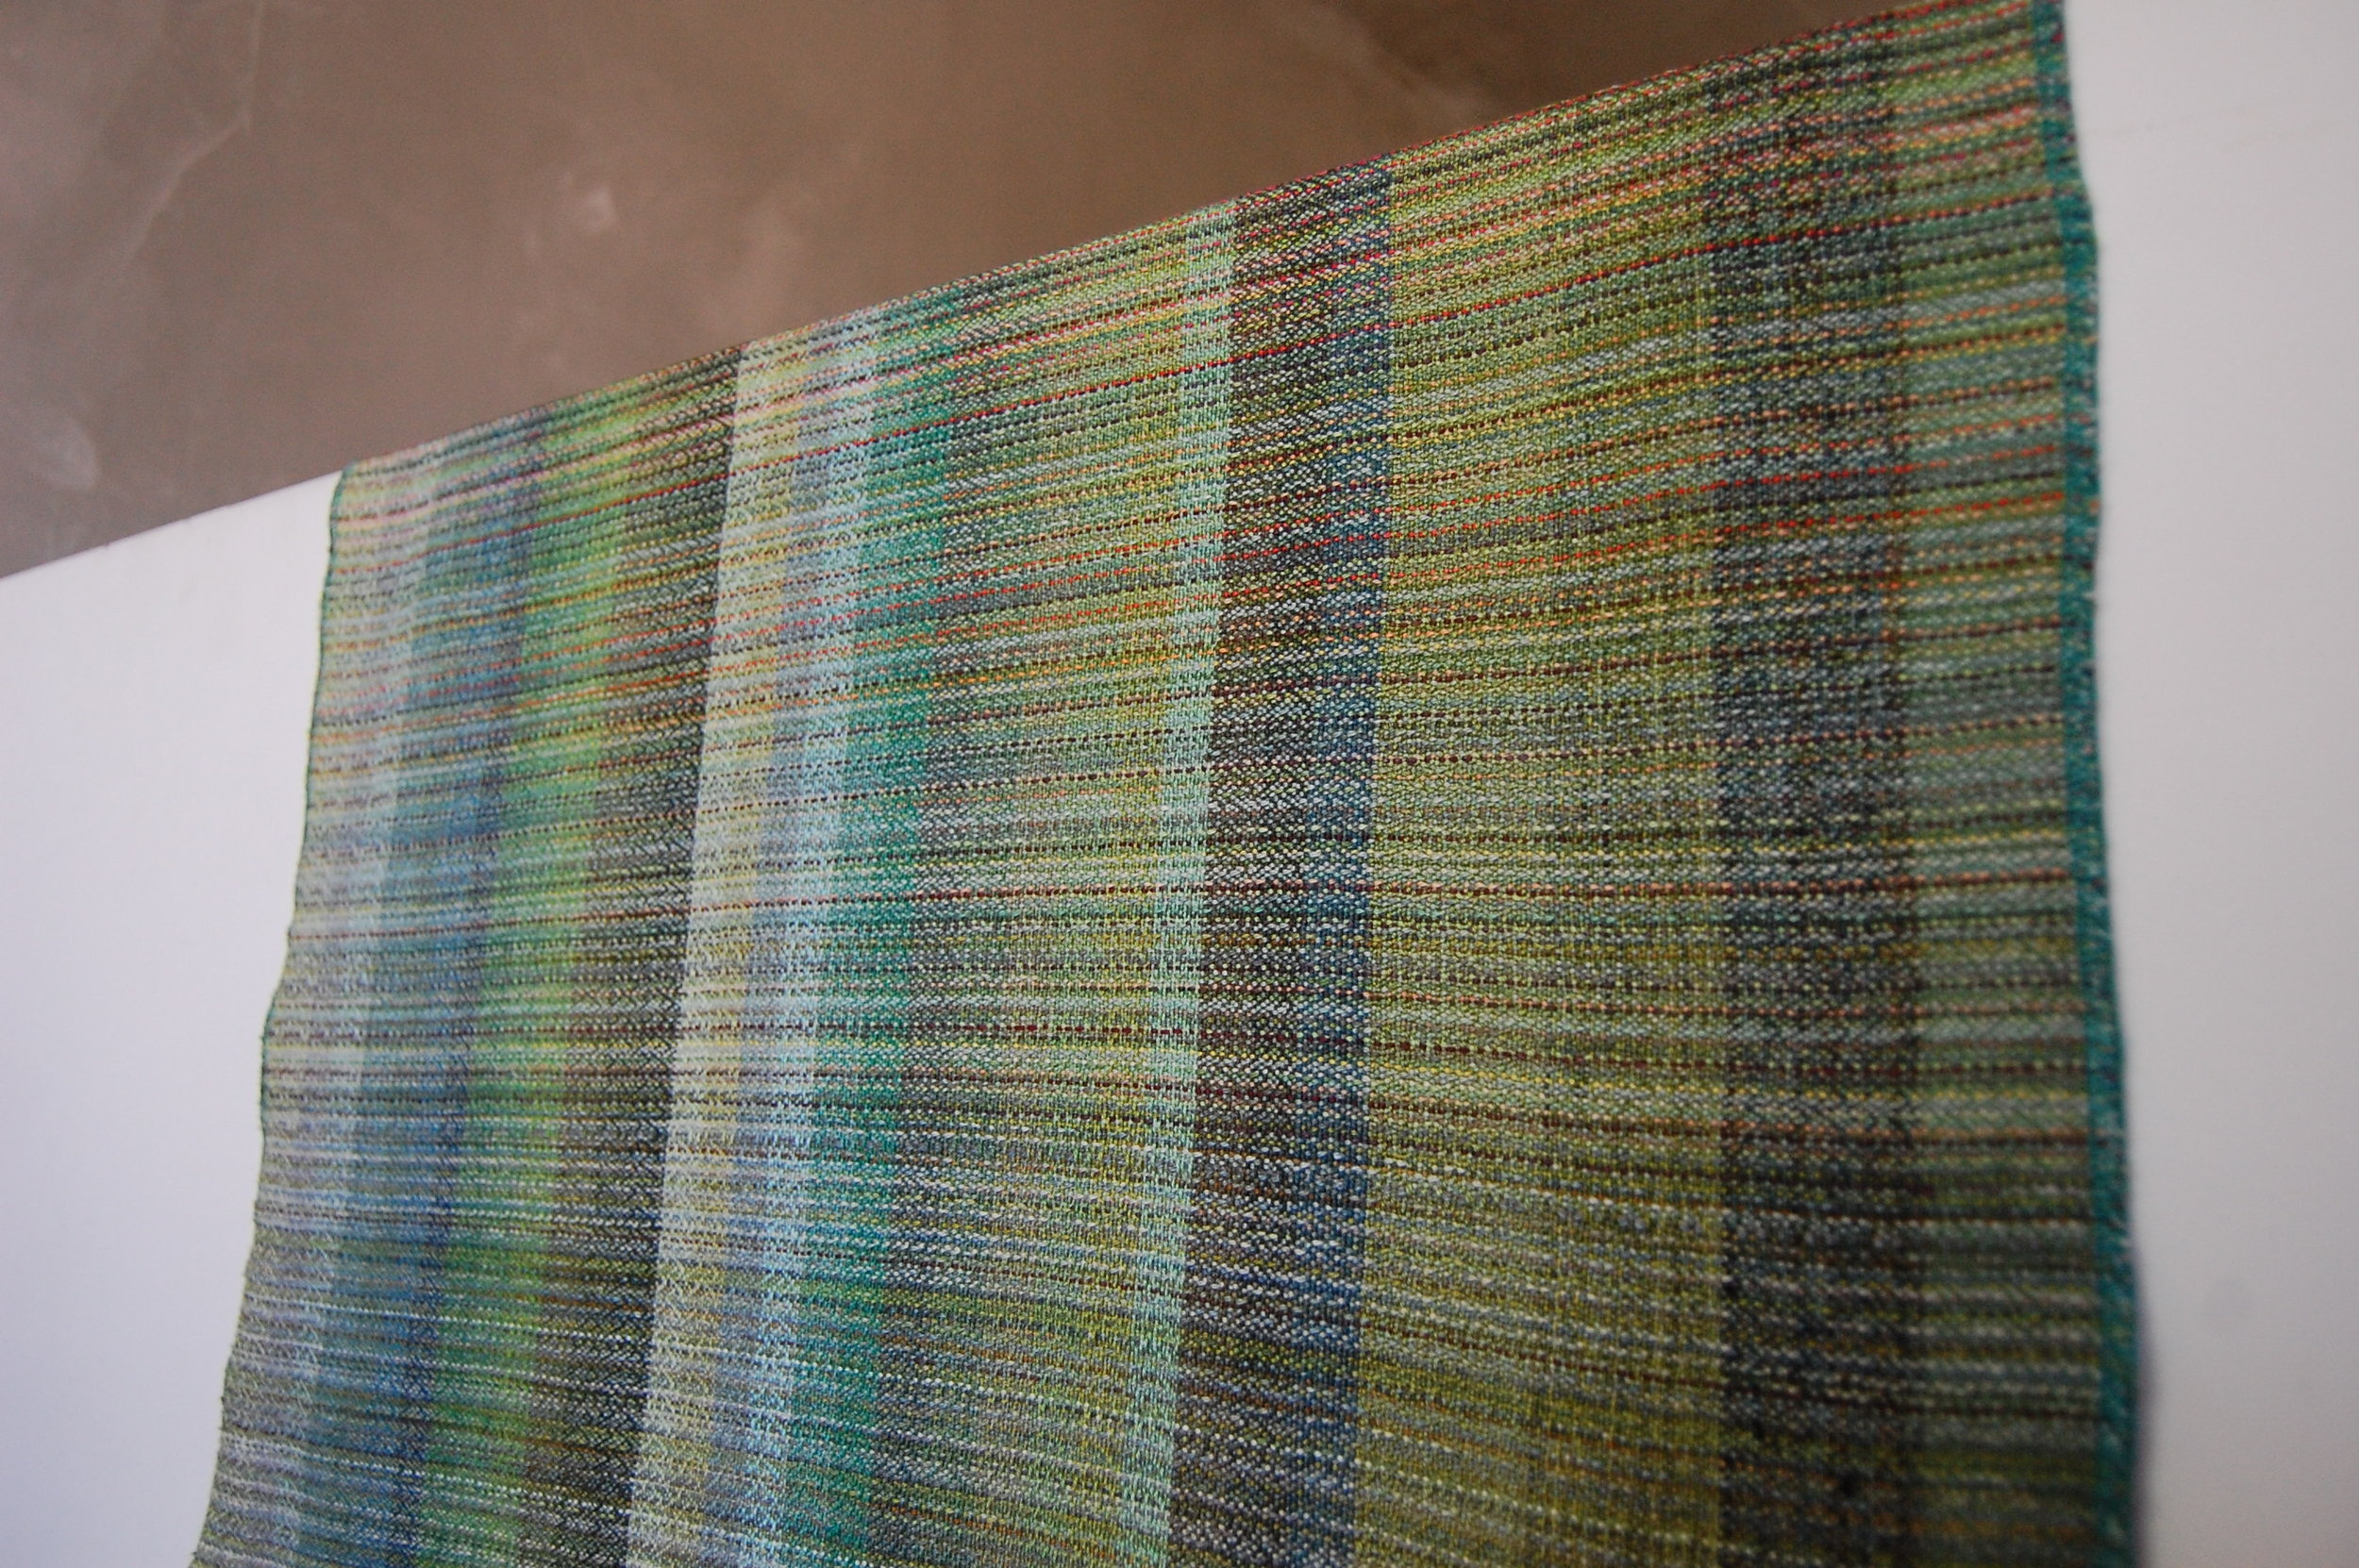 The weft sample piece - wet finished. Cottolin colors are shown on the left from light green to dark green; cotton colors are shown in the middle from light green to dark green; special fibers are the 4 wider stripes on the right.